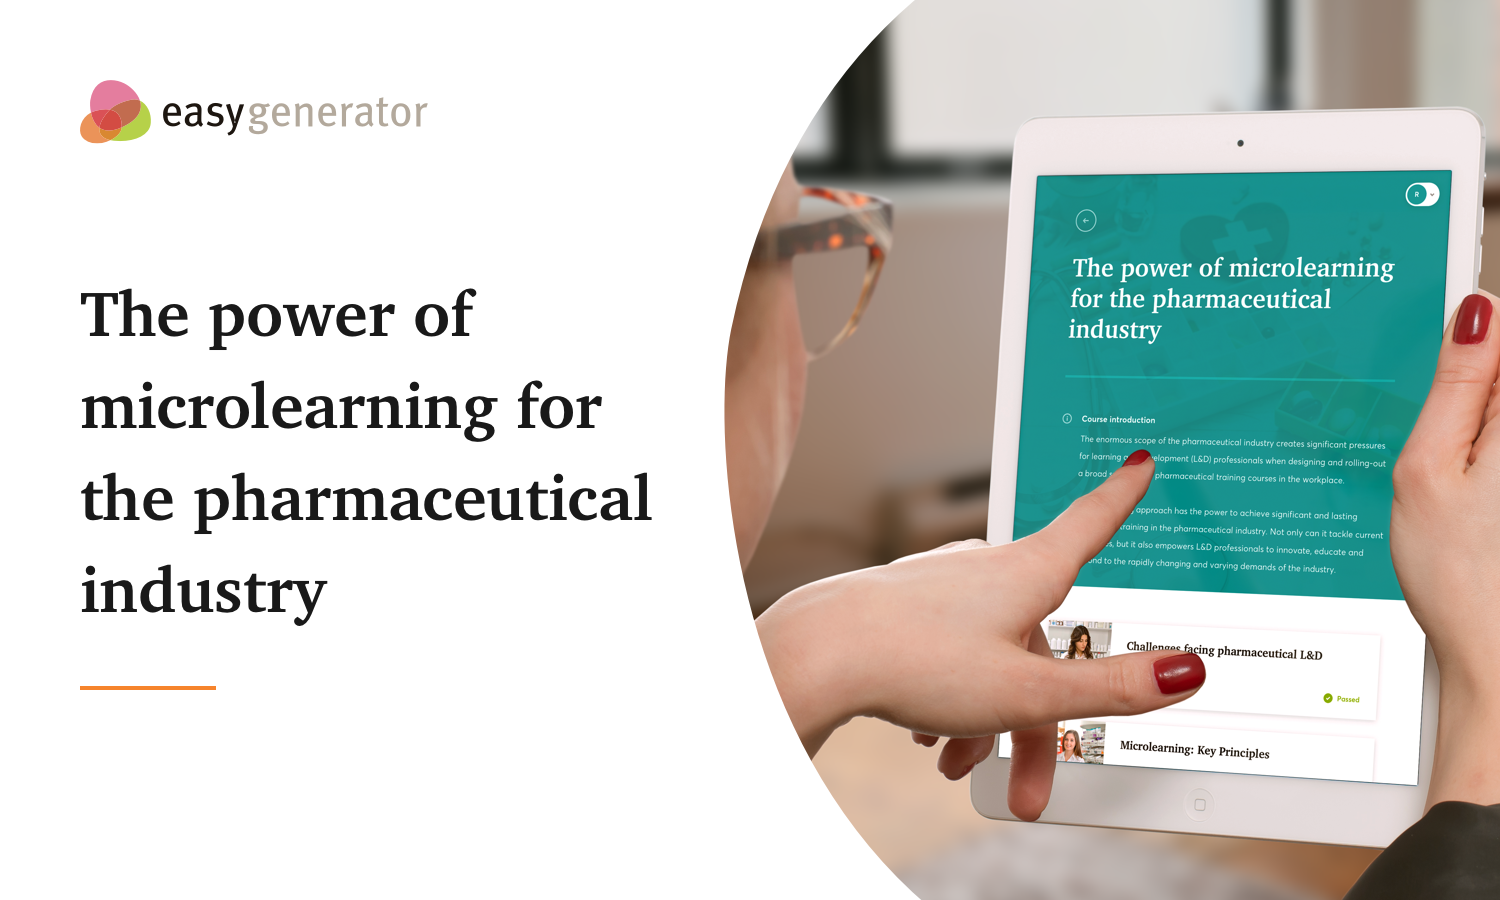 (1) The power of microlearning for the pharmaceutical industry@2x